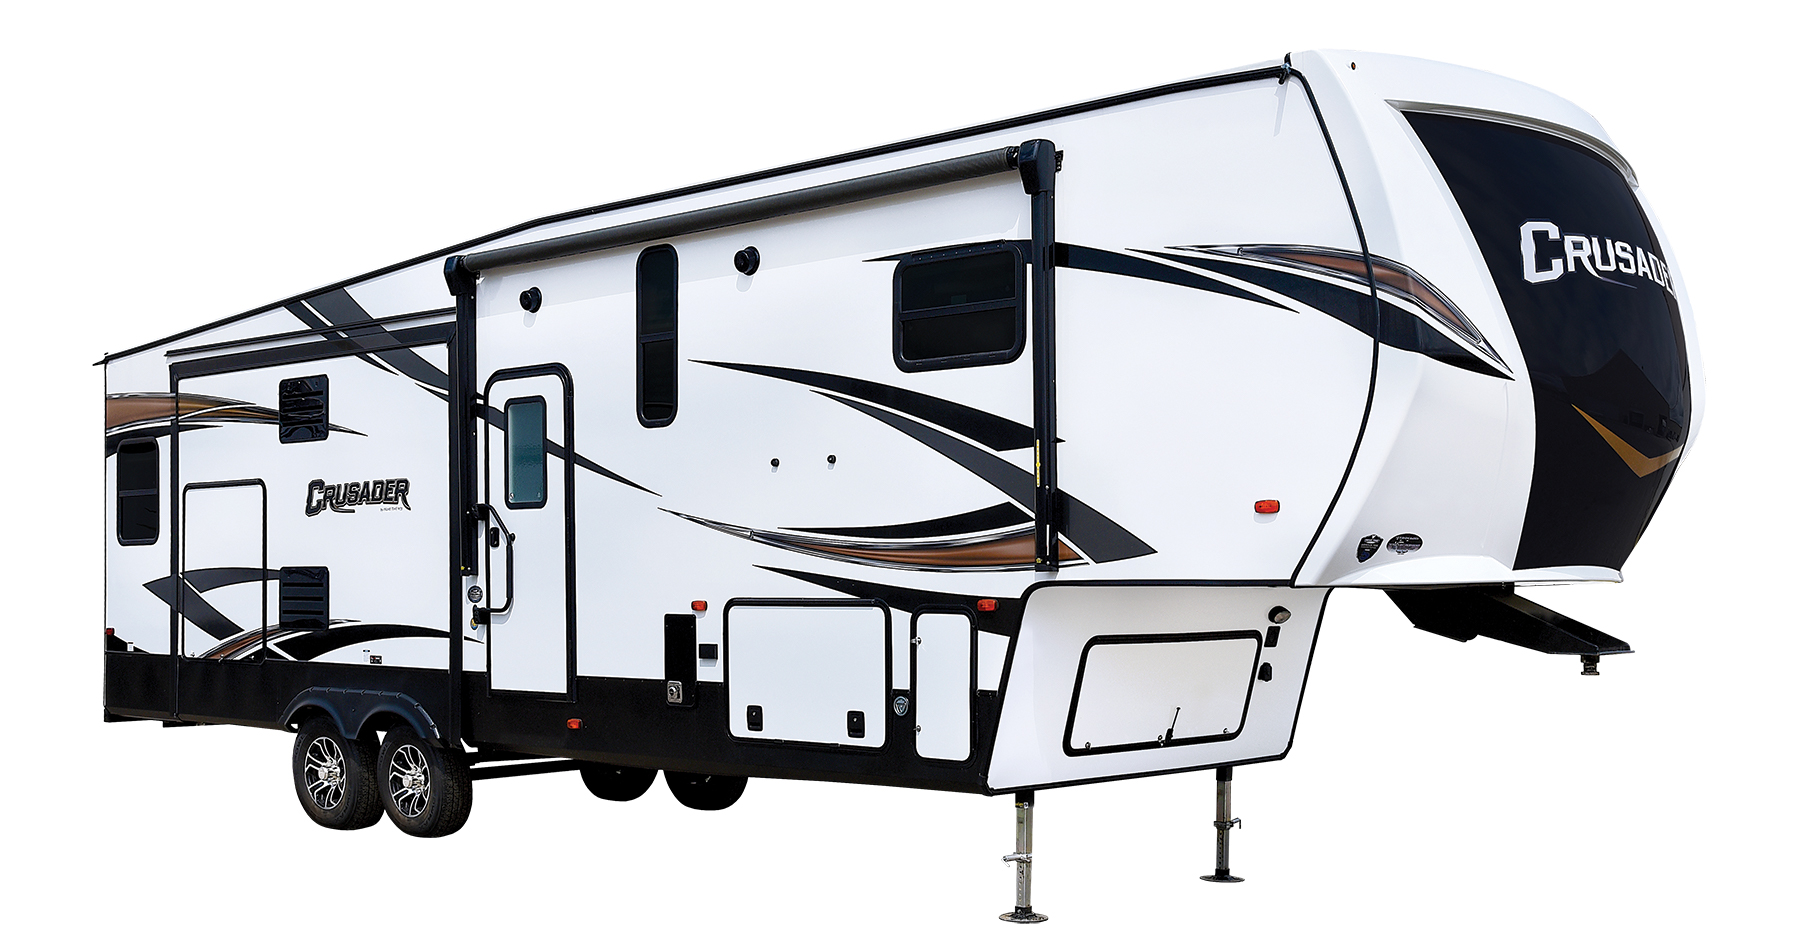 Top 5 Fifth Wheel RVs: Prime Time Crusader